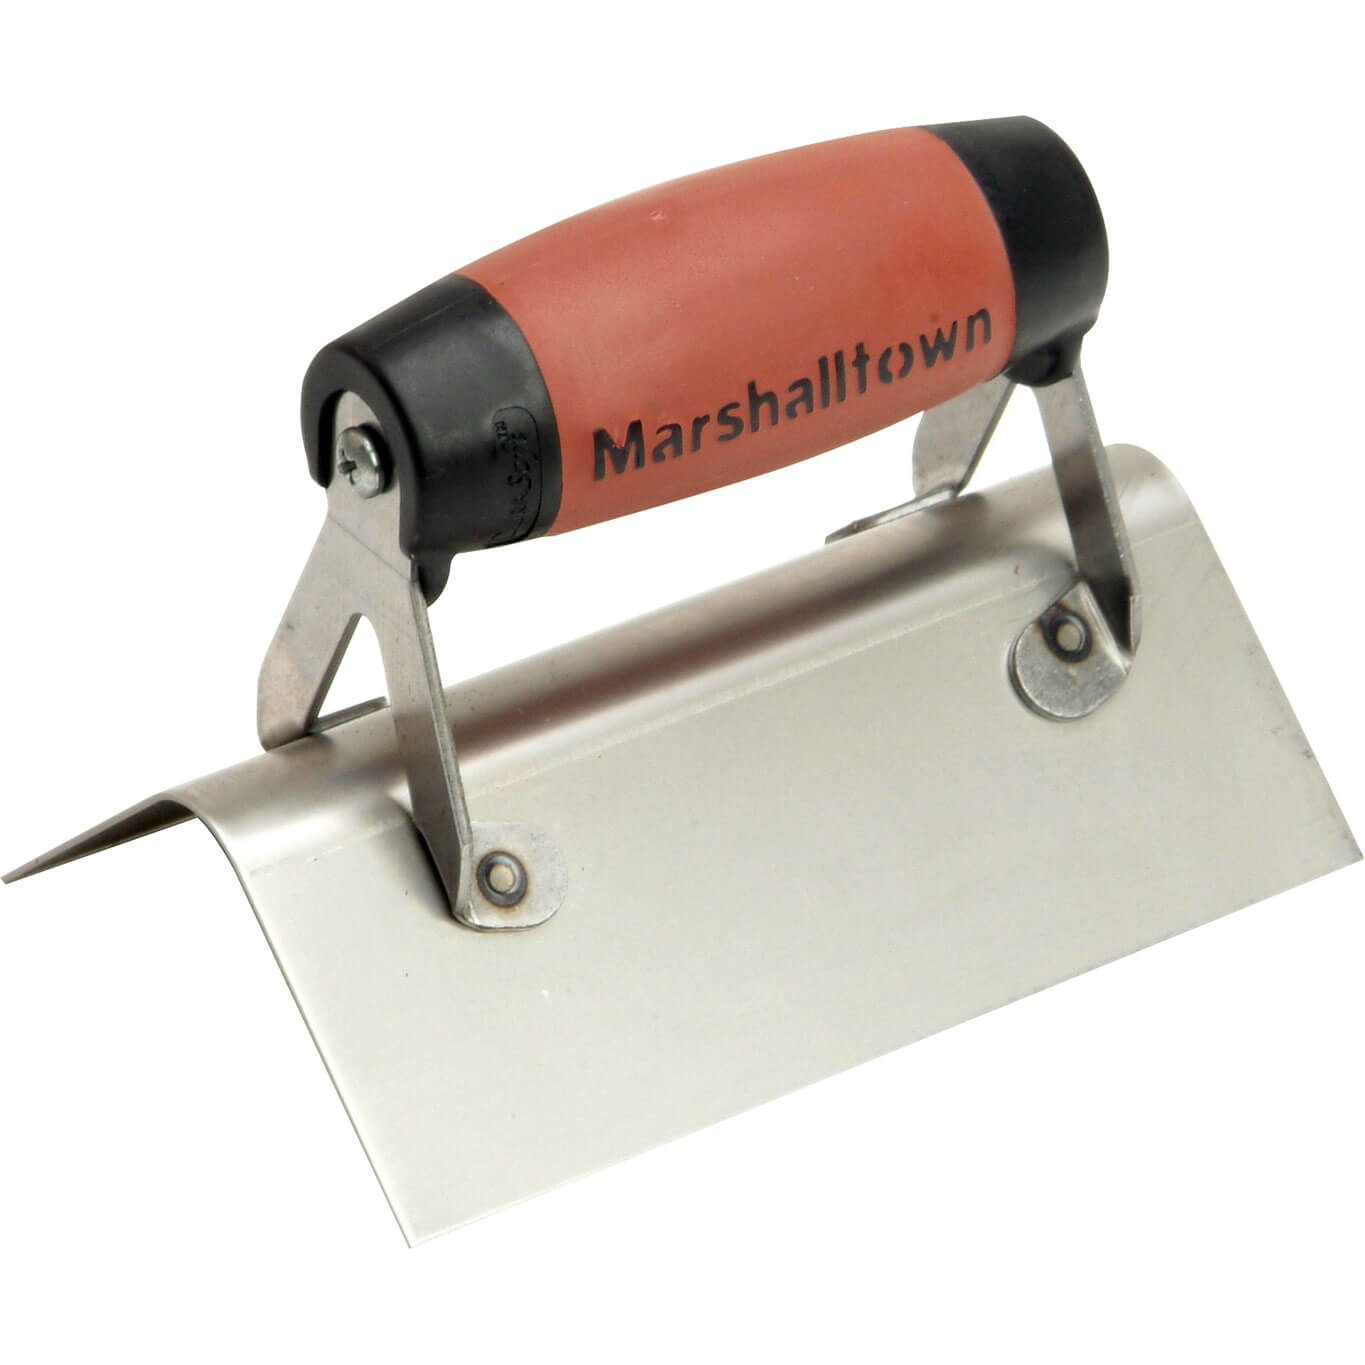 Image of Marshalltown 68SS Stainless Steel External Rounded Corner Trowel